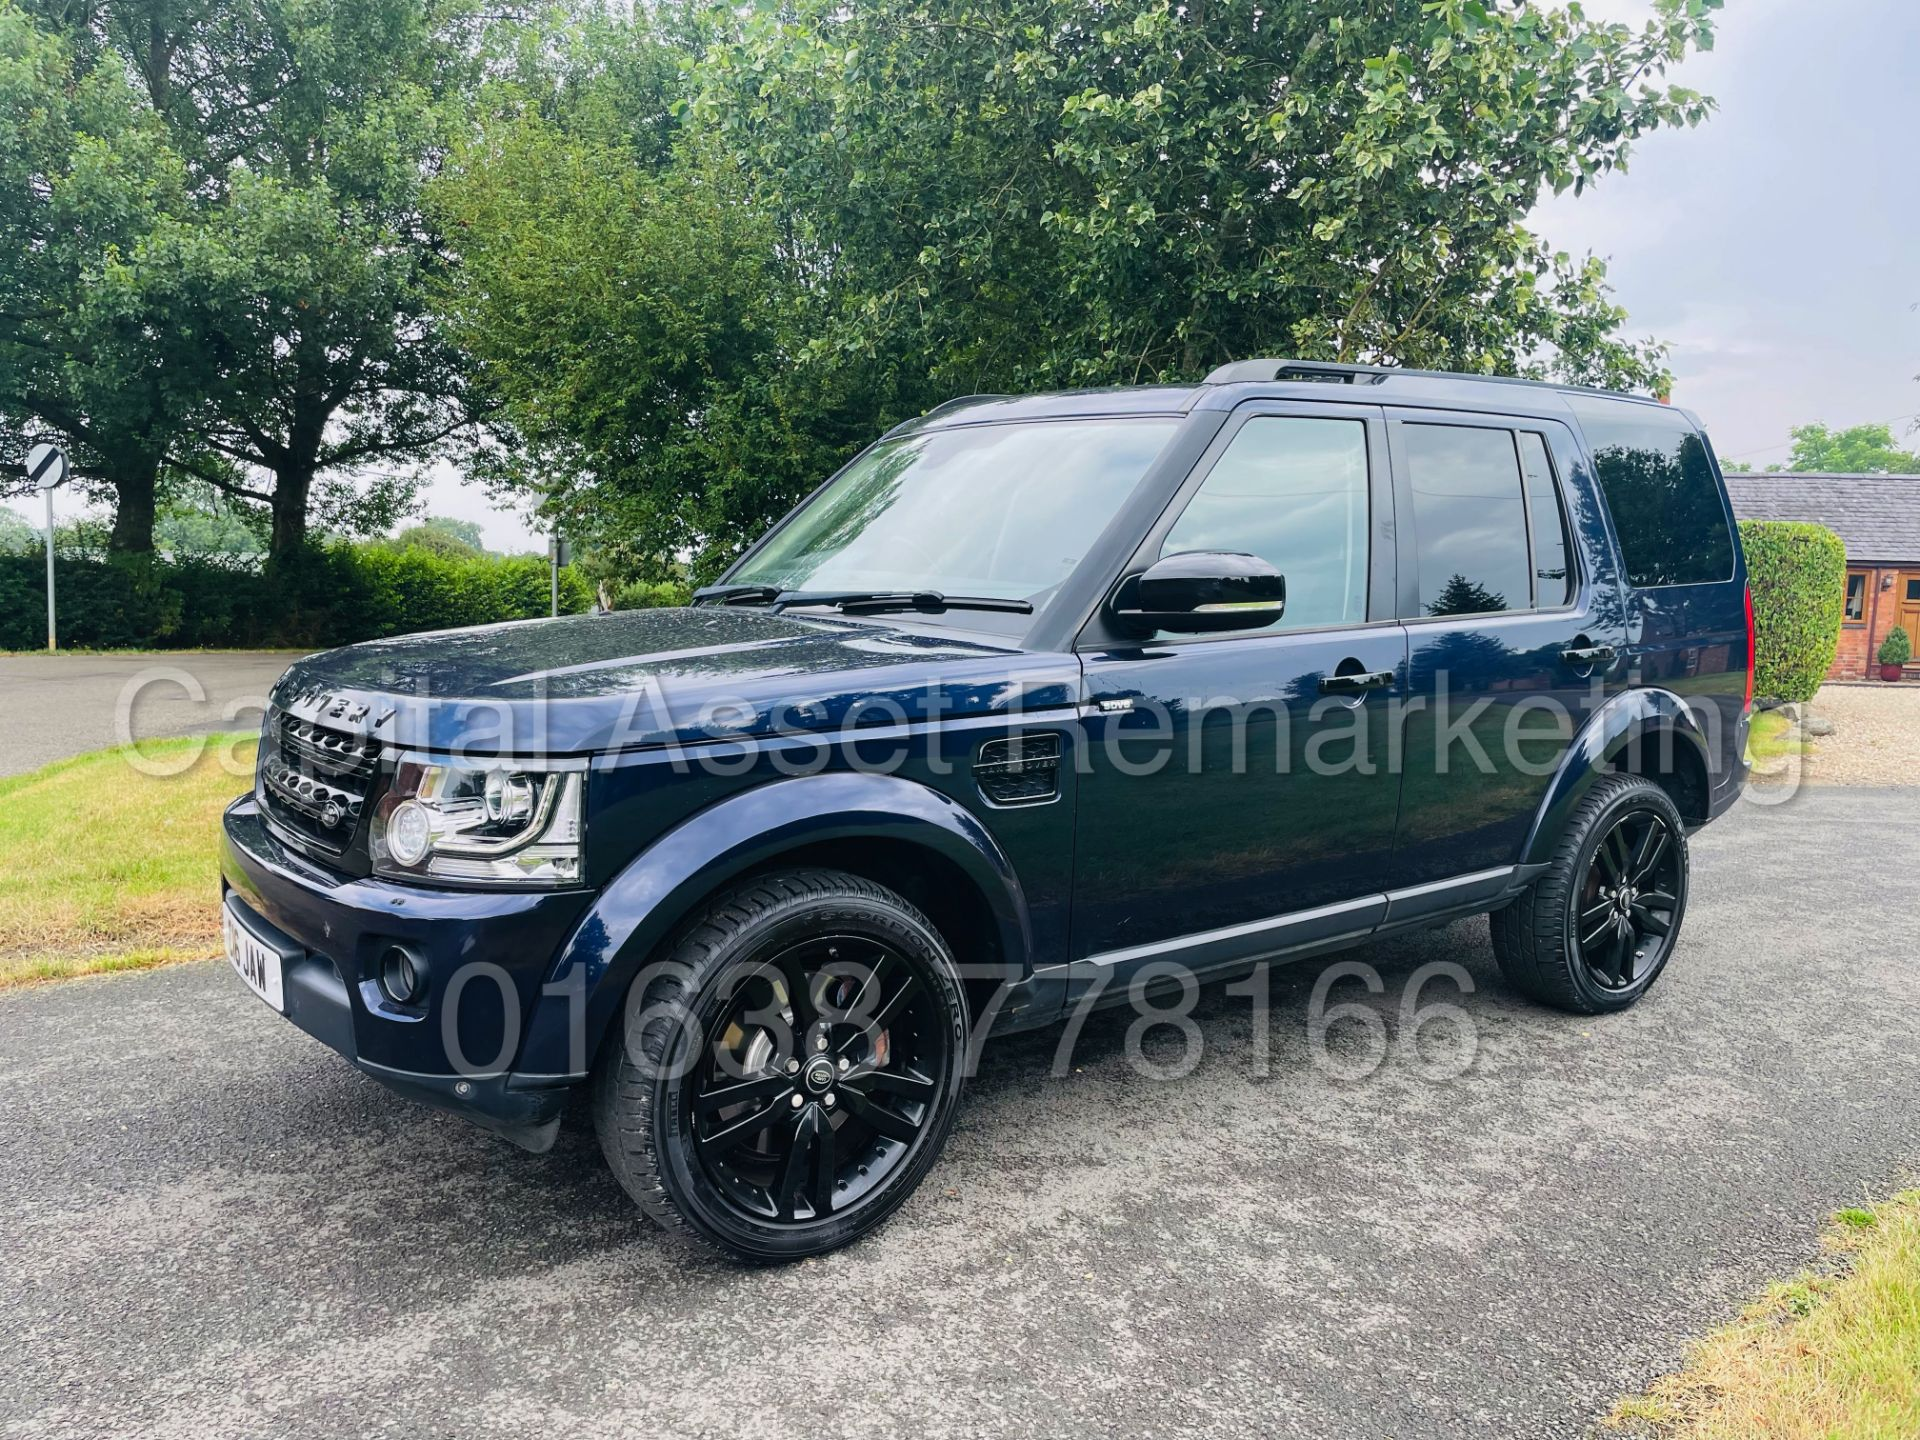 LAND ROVER DISCOVERY 4 *HSE* 7 SEATER SUV (2014 - NEW MODEL) '3.0 SDV6 - 255 BHP - 8 SPEED AUTO' - Image 3 of 61